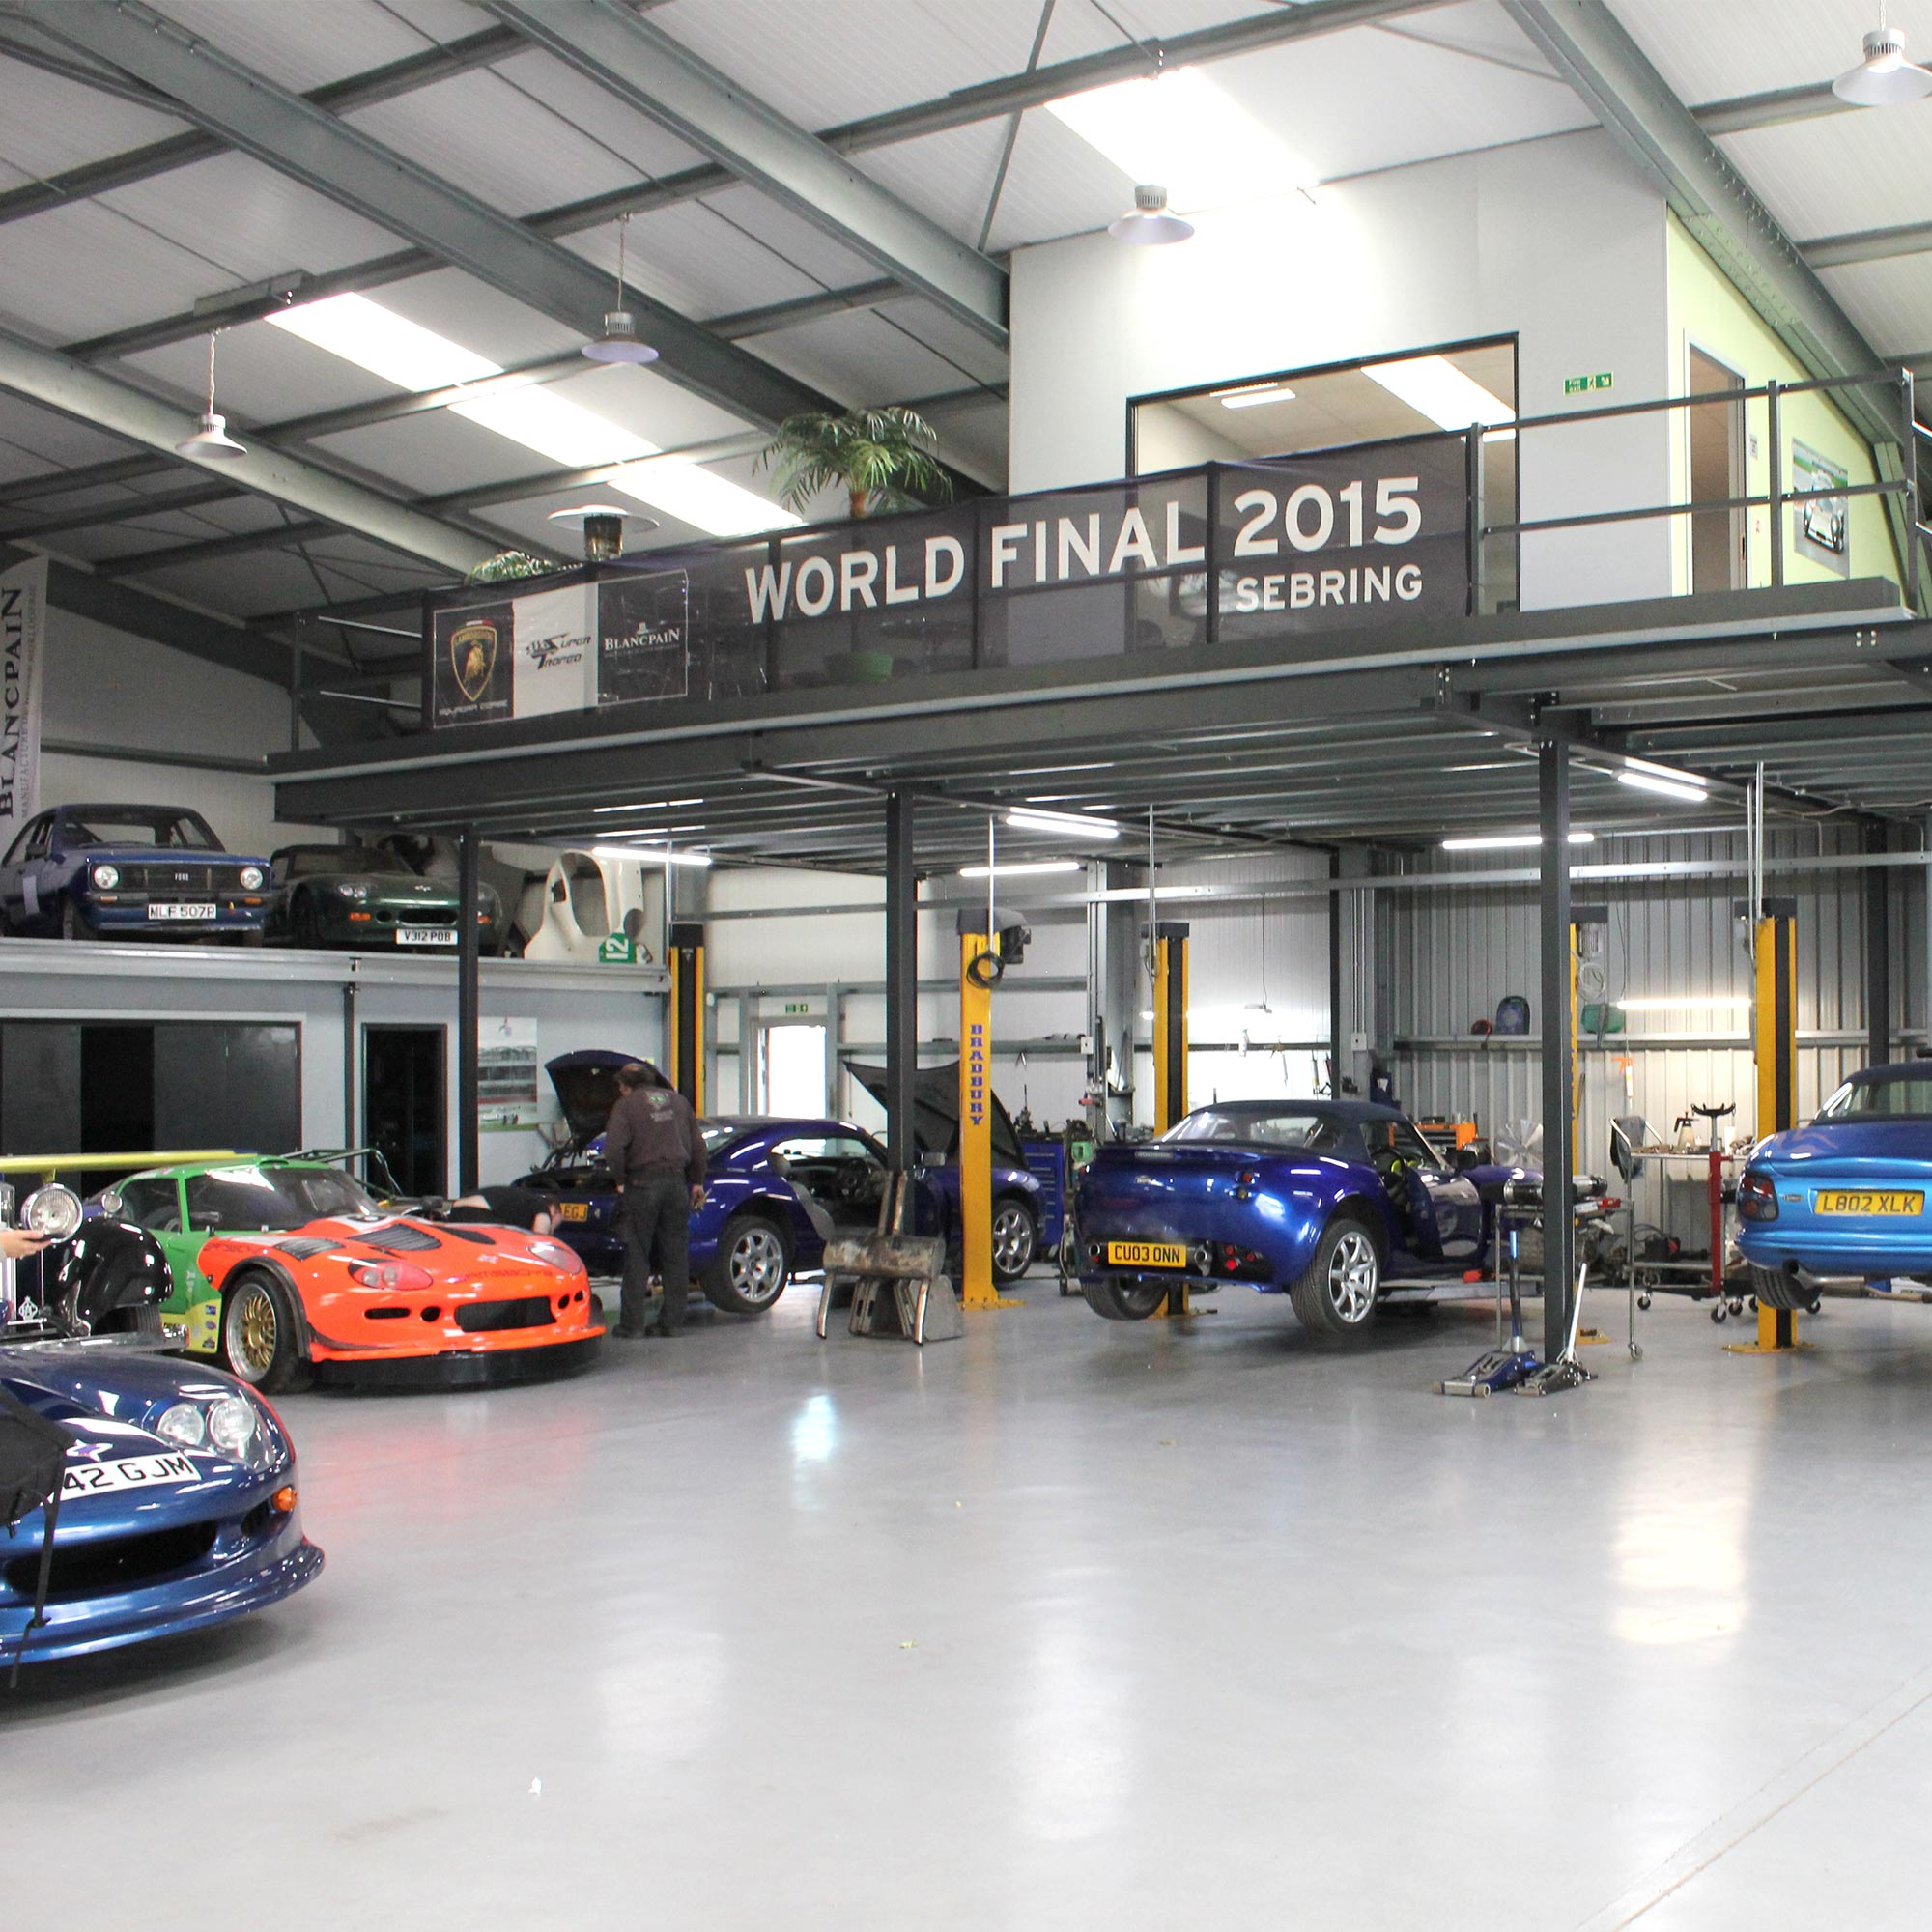 topcats racing workshop with variety of cars on ramp and overlooking balcony in distance